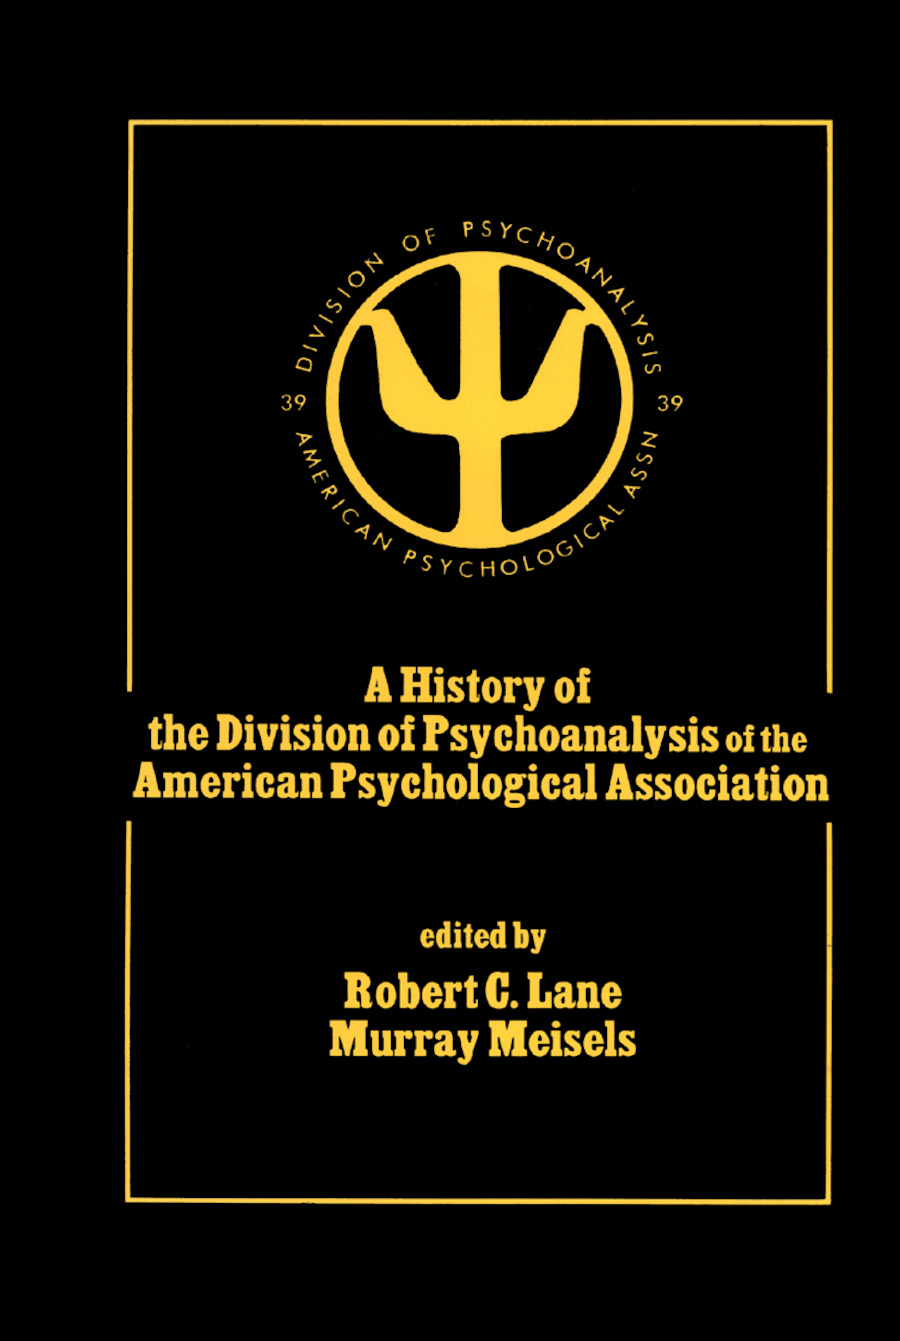 A History of the Division of Psychoanalysis of the American Psychological Associat